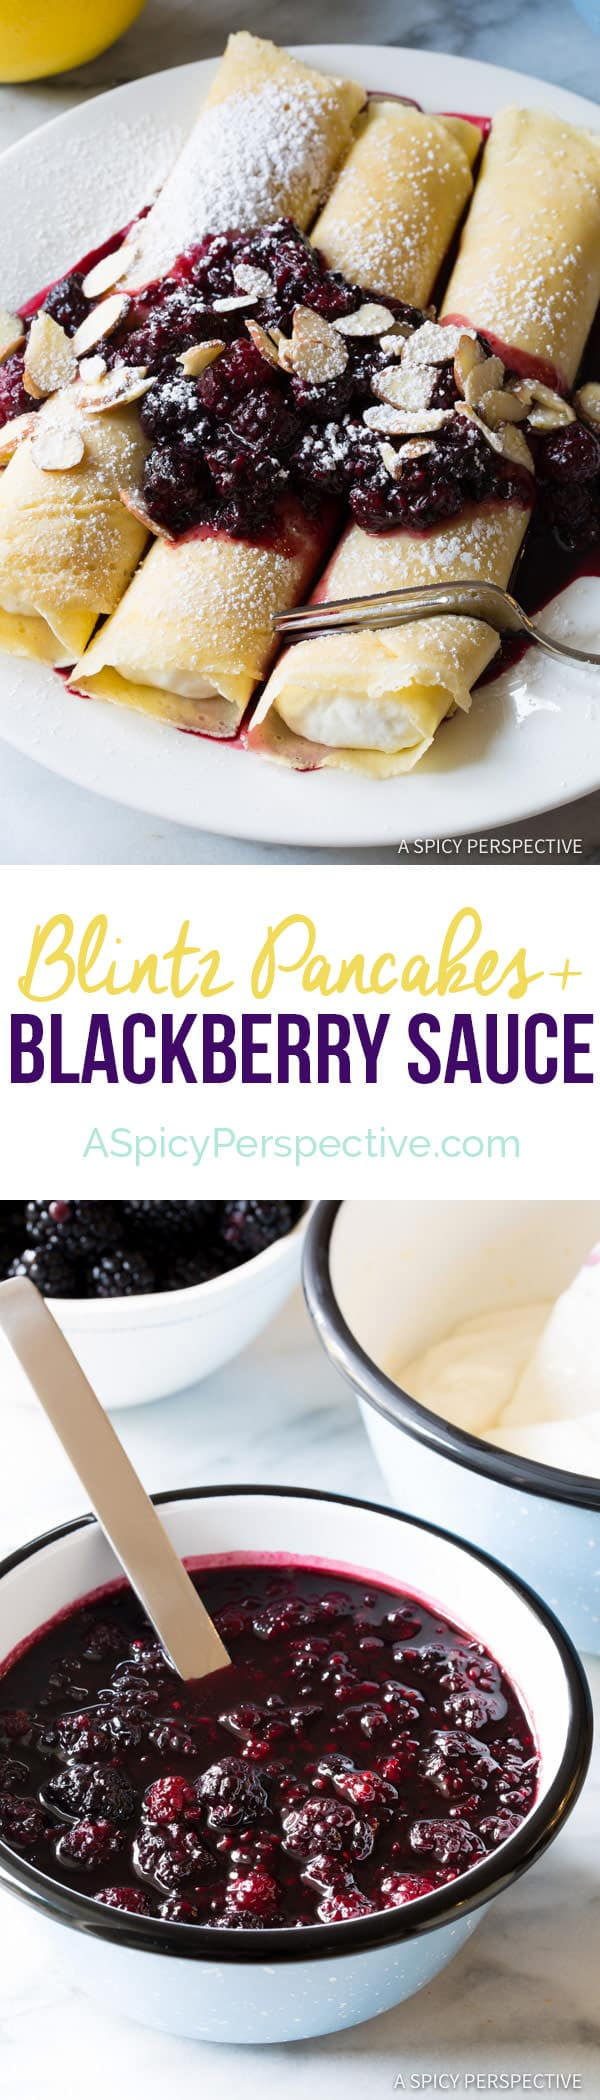 Sweet Ricotta Cream Filled Blintz Pancakes Recipe with Blackberry Sauce | ASpicyPerspective.com